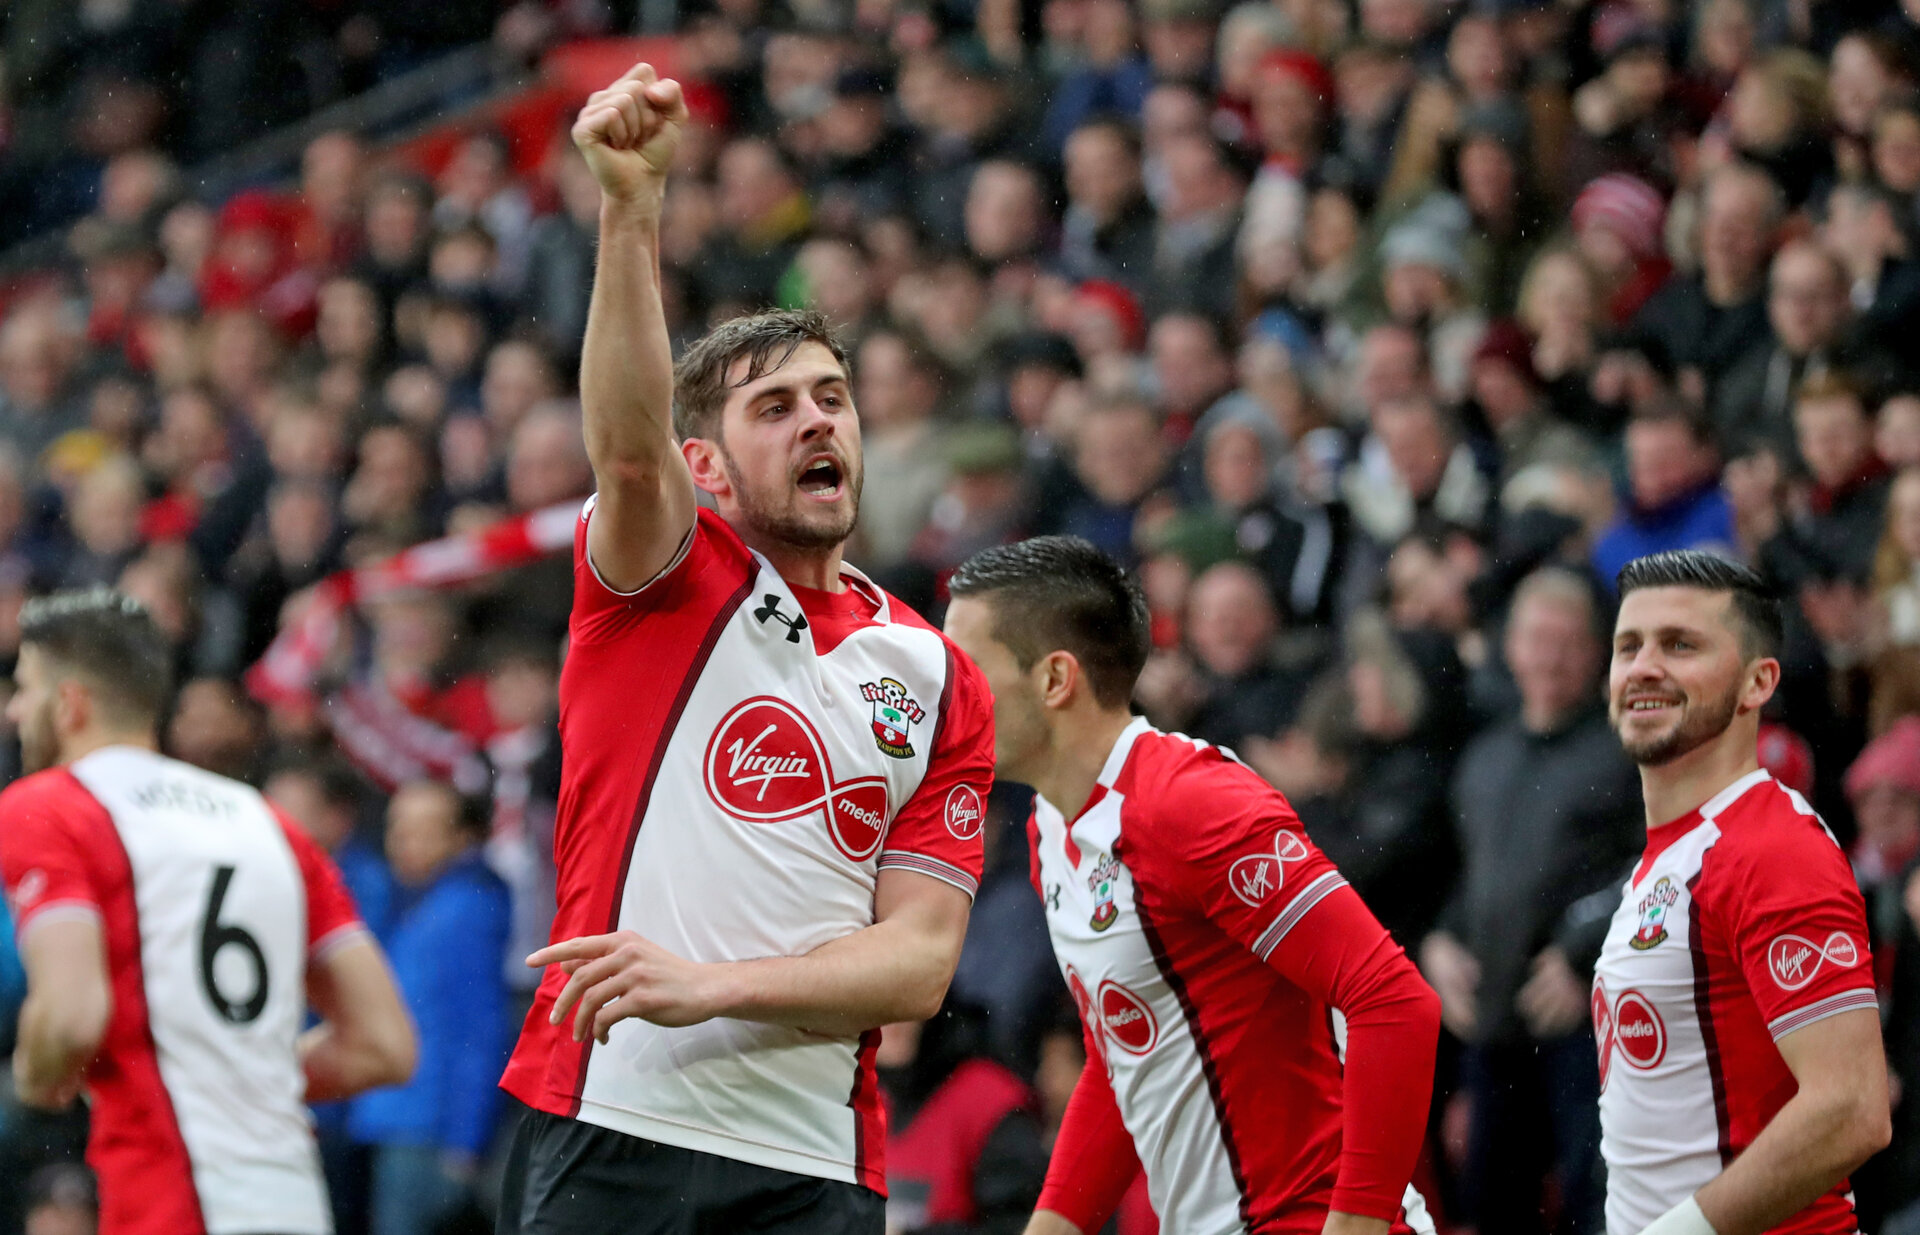 SOUTHAMPTON, ENGLAND - JANUARY 27: Jack Stephens of Southampton FC celebrates after opening the scoring during the FA Cup 4th round match between Southampton FC and Watford, at St Mary's Stadium on January 27, 2018 in Southampton, England. (Photo by Matt Watson/Southampton FC via Getty Images)